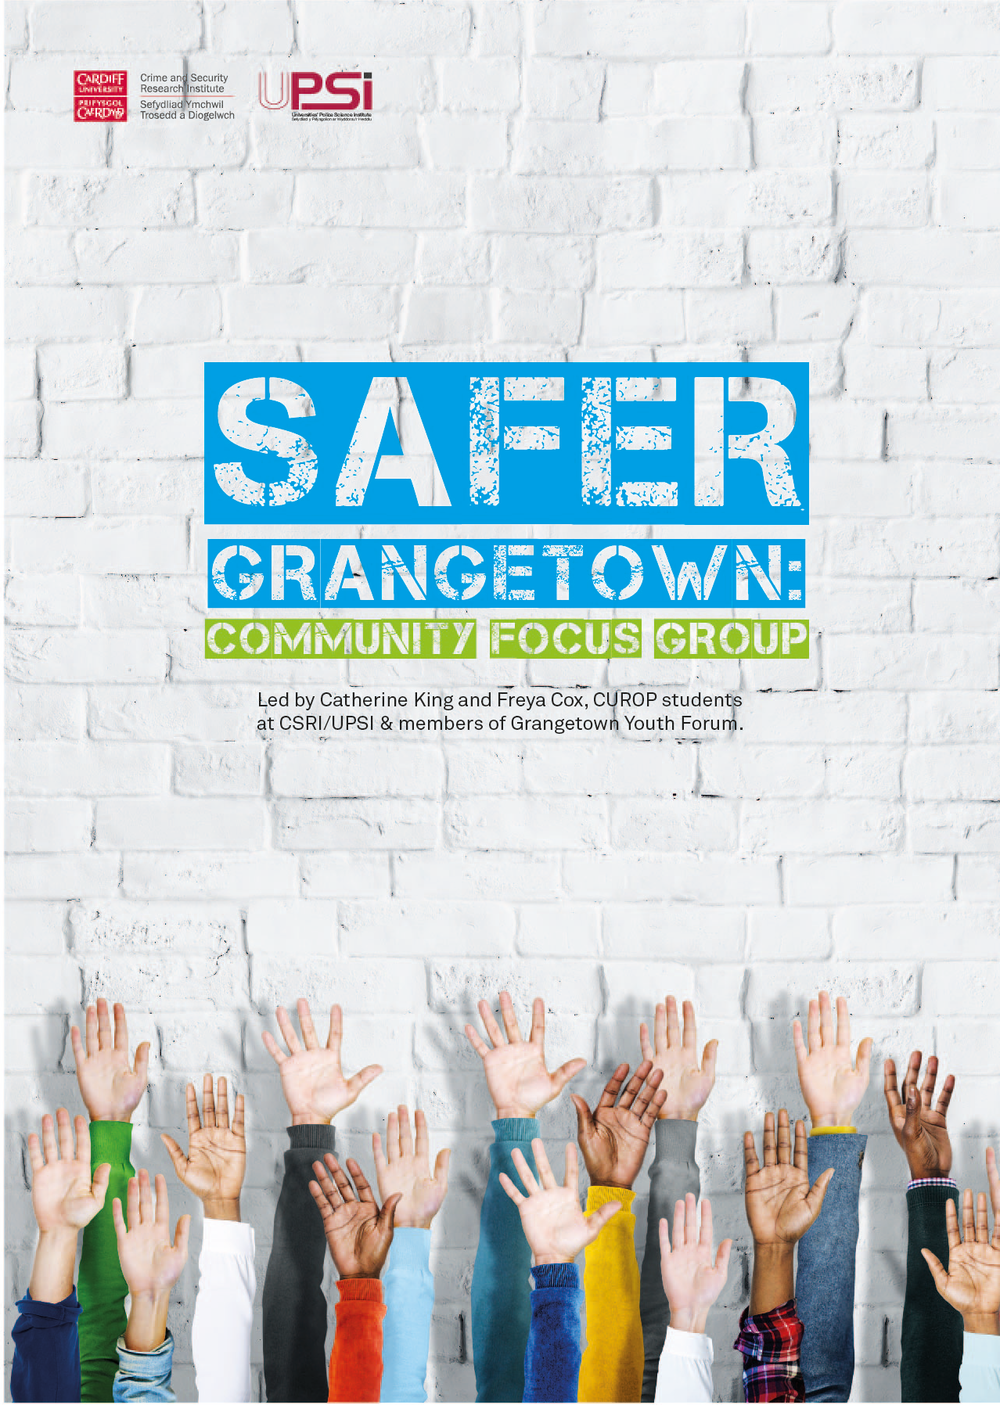 Safer Grangetown: Community Focus Group